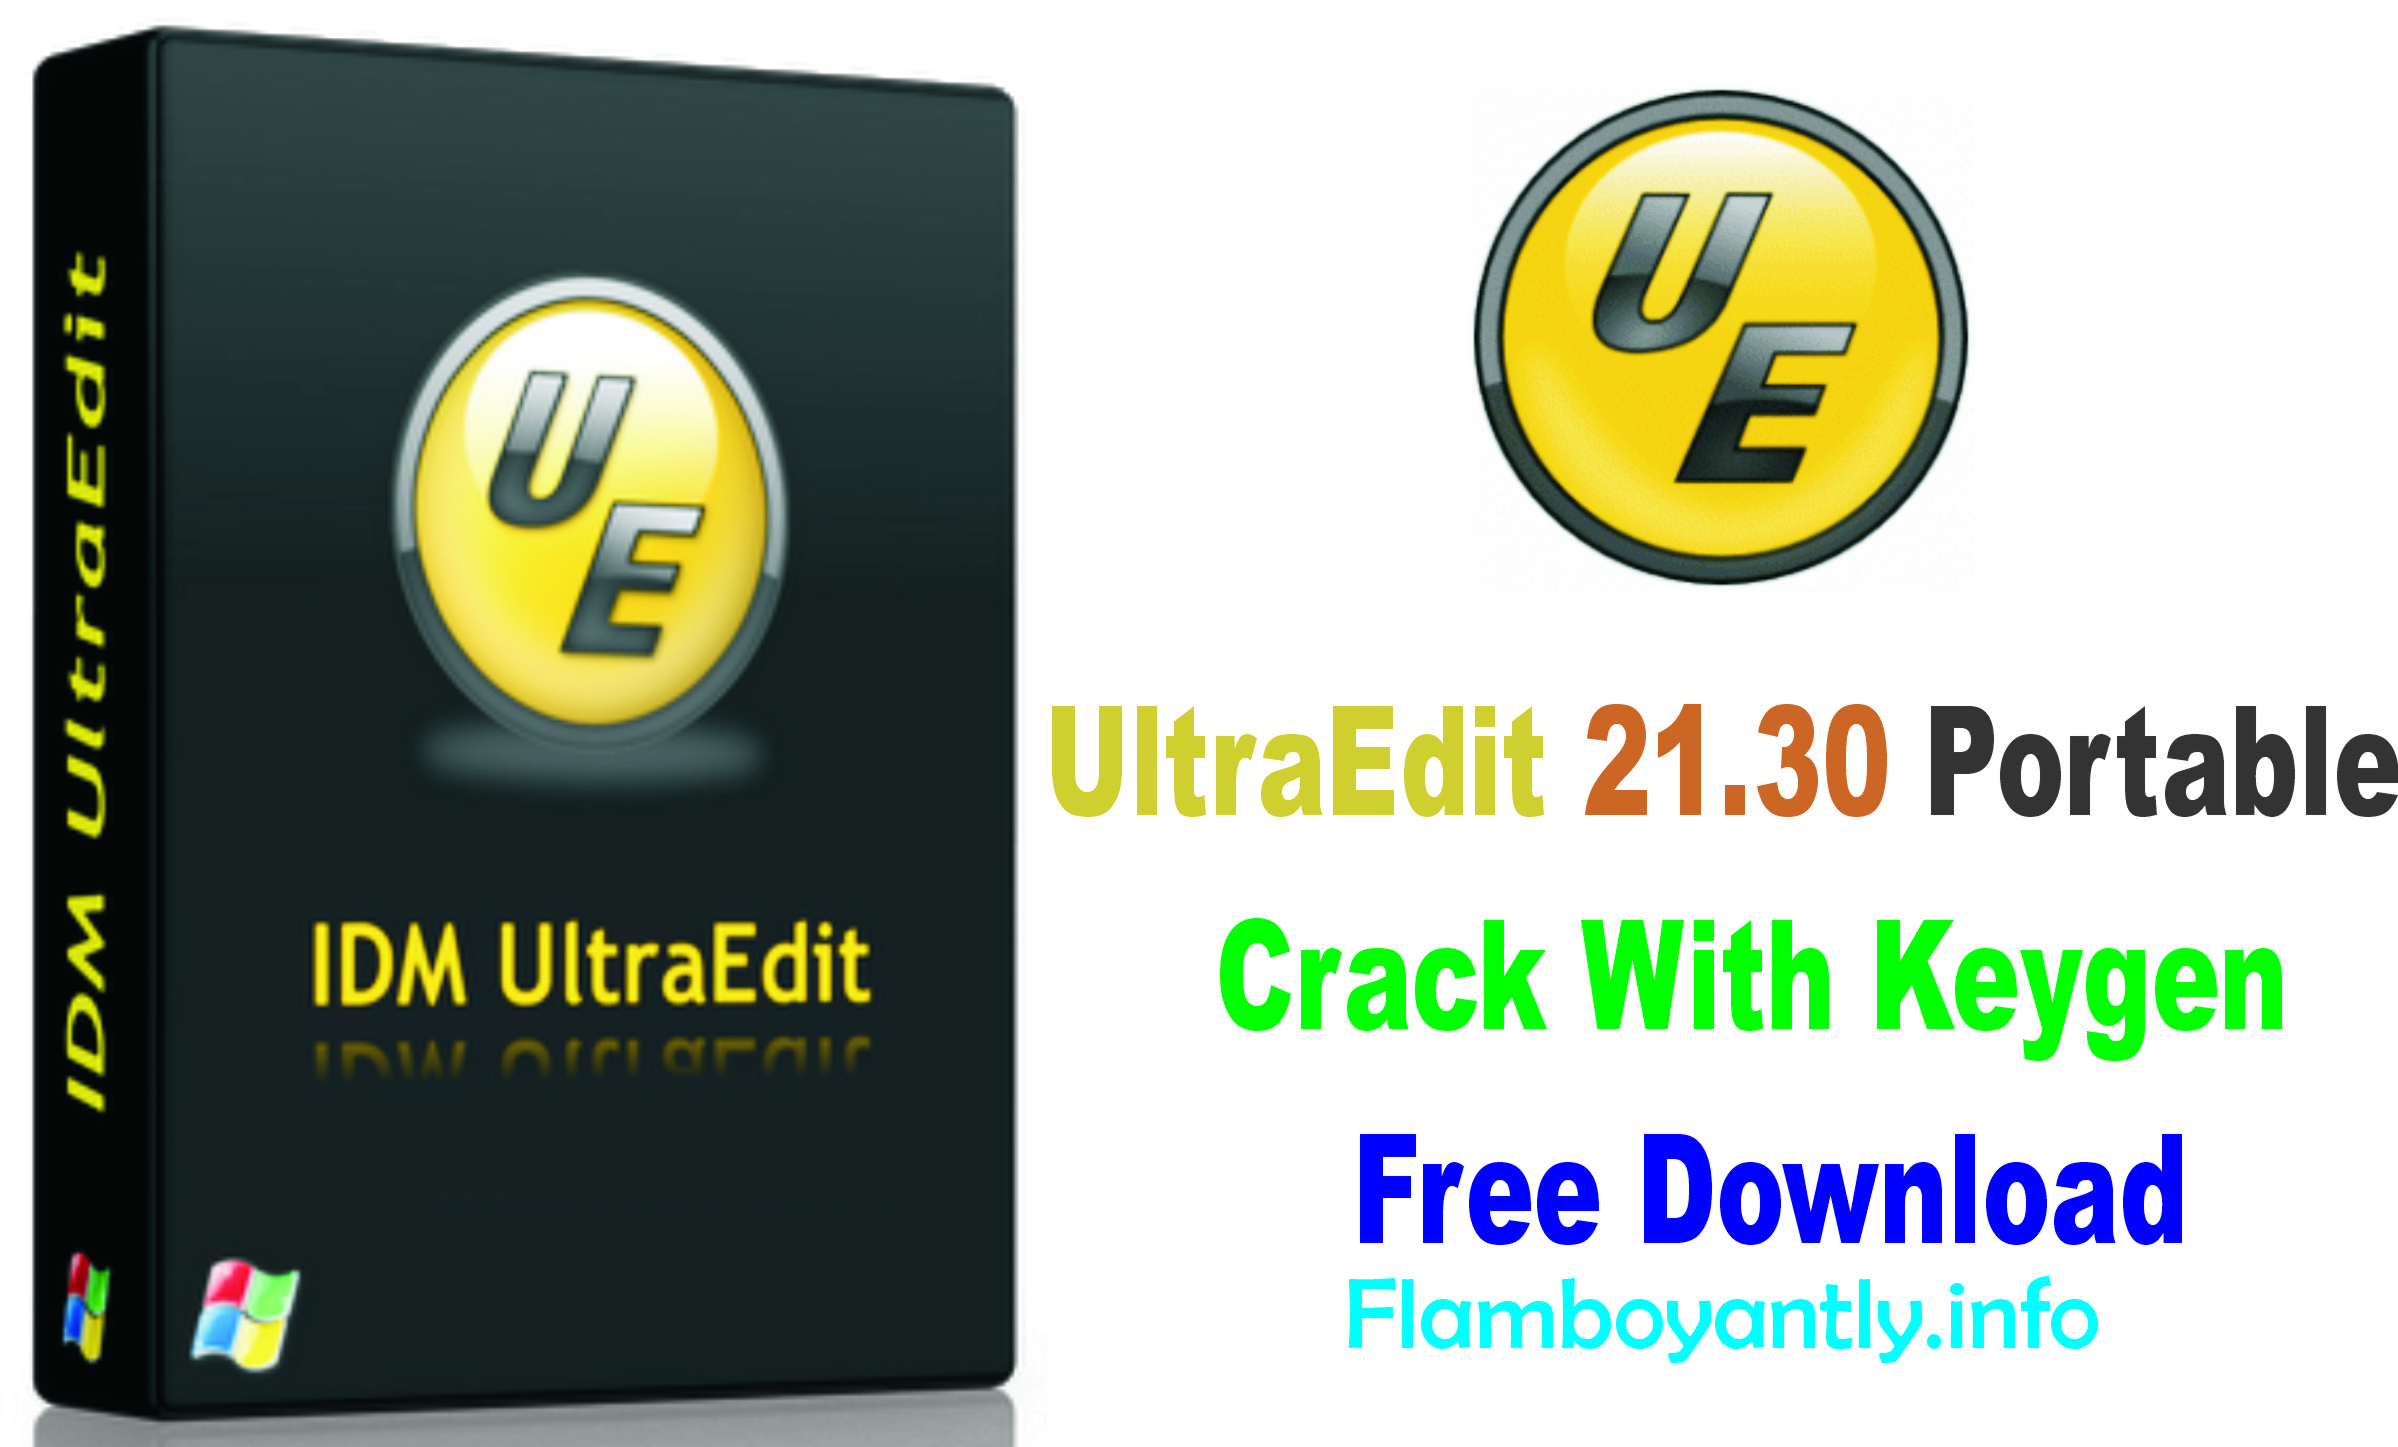 UltraEdit 21.30 Portable Crack With Keygen Free Download